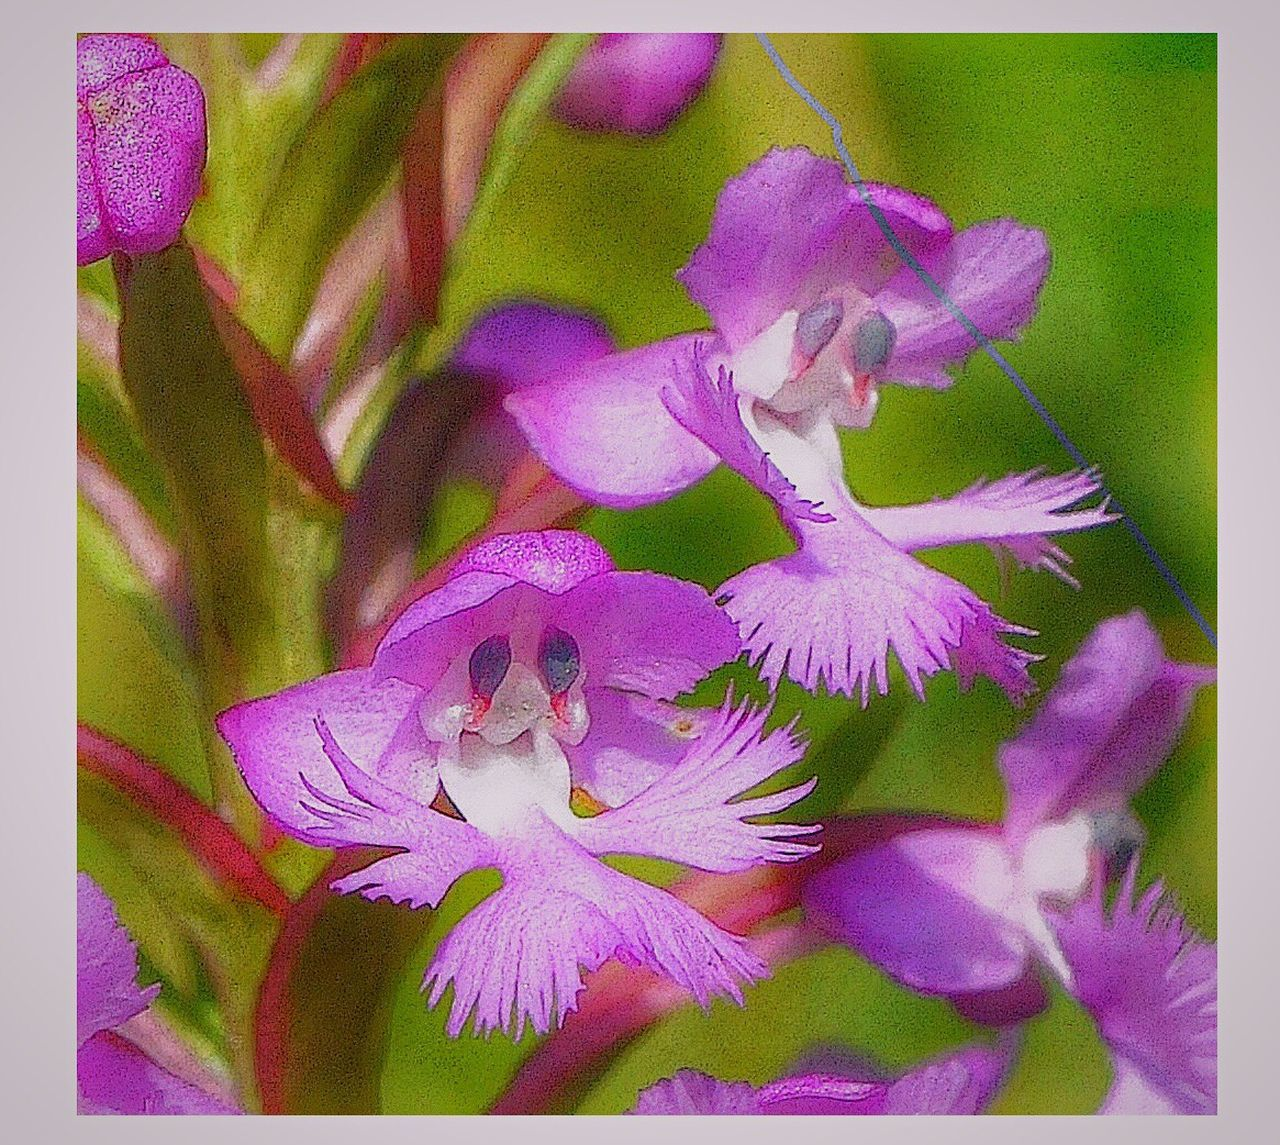 """""""Old Man Orchid"""". Because orchid flowers are bilaterally symmetric, symmetric in only one plane, it is easy for the human eye to conjure up all sorts of resemblances to other creatures. Here the flowers if the Lesser Purple Fringed Orchid (Platantheta psycodes) looks remarkably like the face of an old man. Check This Out Taking Photos Enjoying Life Botanizing Orchids Platanthera Orchid Blossoms IPhoneography The Great Outdoors - 2016 EyeEm Awards Natural Beauty Nature Nature_collection Nature Photography Iphonephotography Malephotographerofthemonth Wildflowers In Bloom Wildflowers Showcase June This Week On Eyeem Pink Flower Pink Flowers Great Smoky Mountains  From My Point Of View Mount Mitchell"""